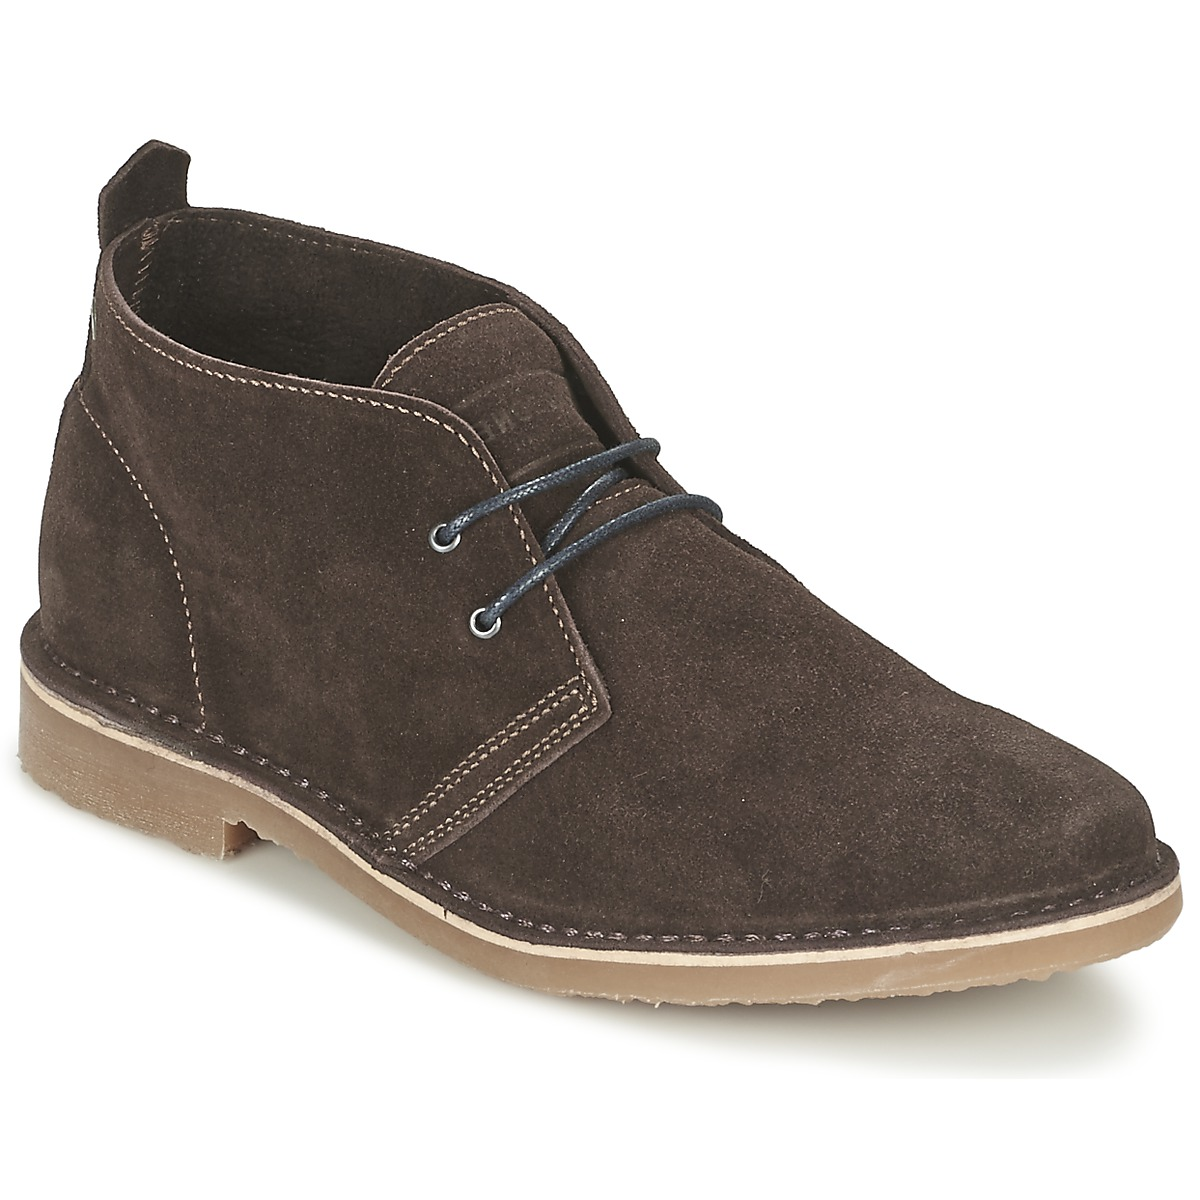 Jack & Jones GOBI SUEDE DESERT BOOT Marron